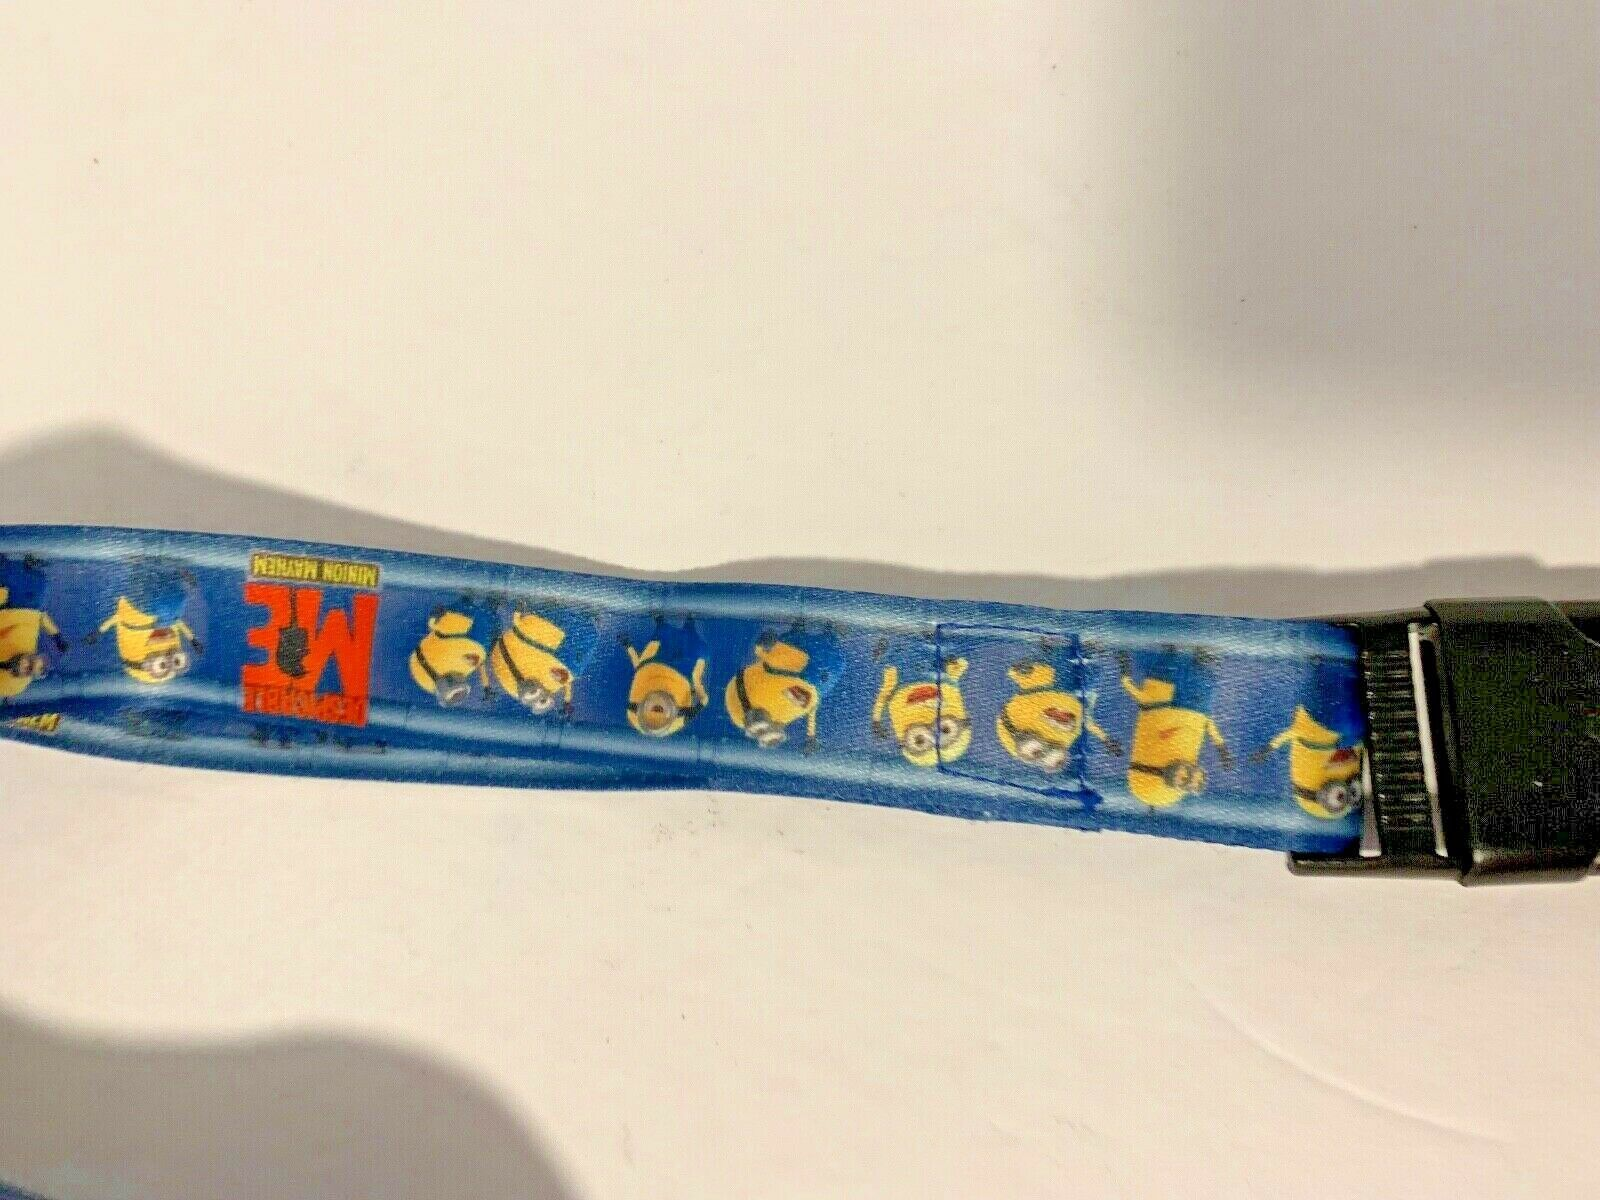 Universal Despicable ME Minions Lanyard with Plastic Ticket Holder